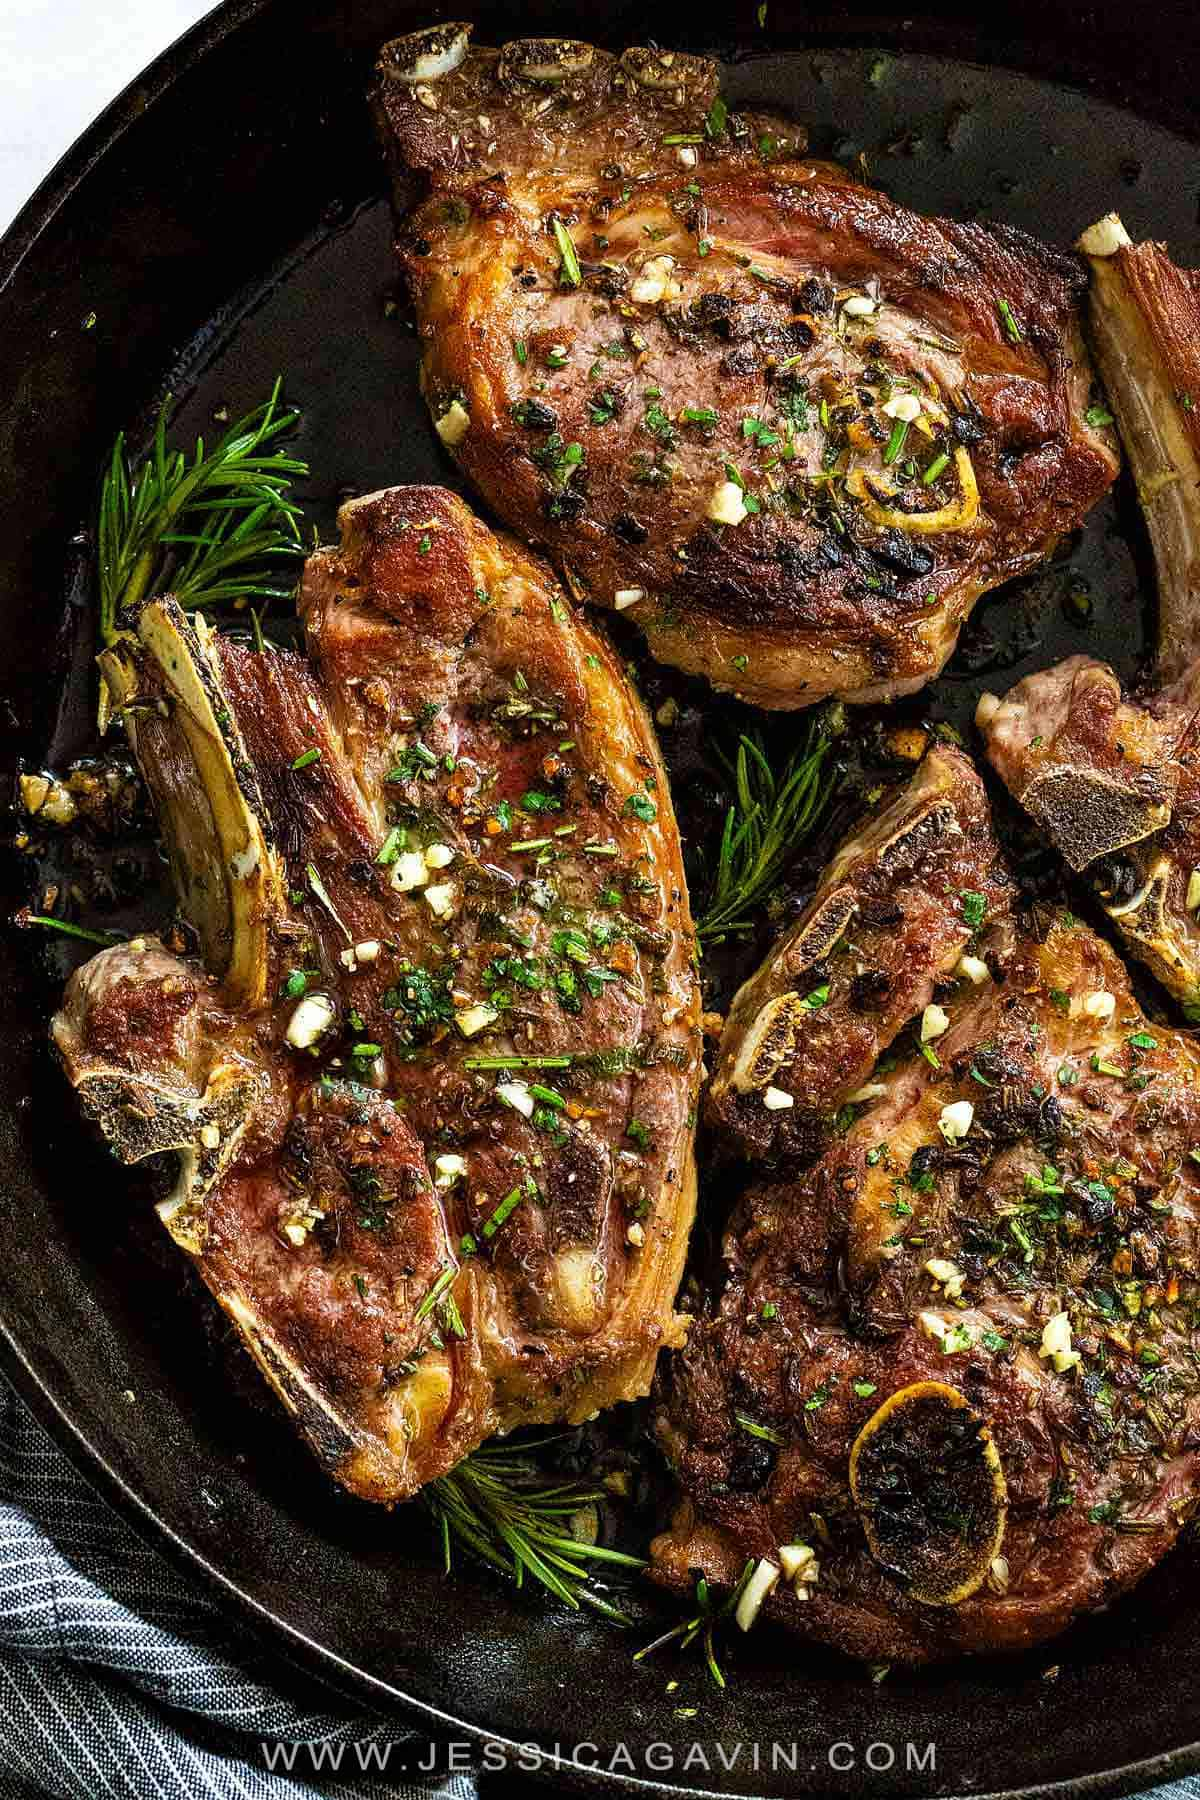 Lamb chops marinated in garlic, rosemary, thyme, and olive oil then pan-seared on the stovetop to create a wonderfully flavorful crust. #lamb #lambchops #panseared